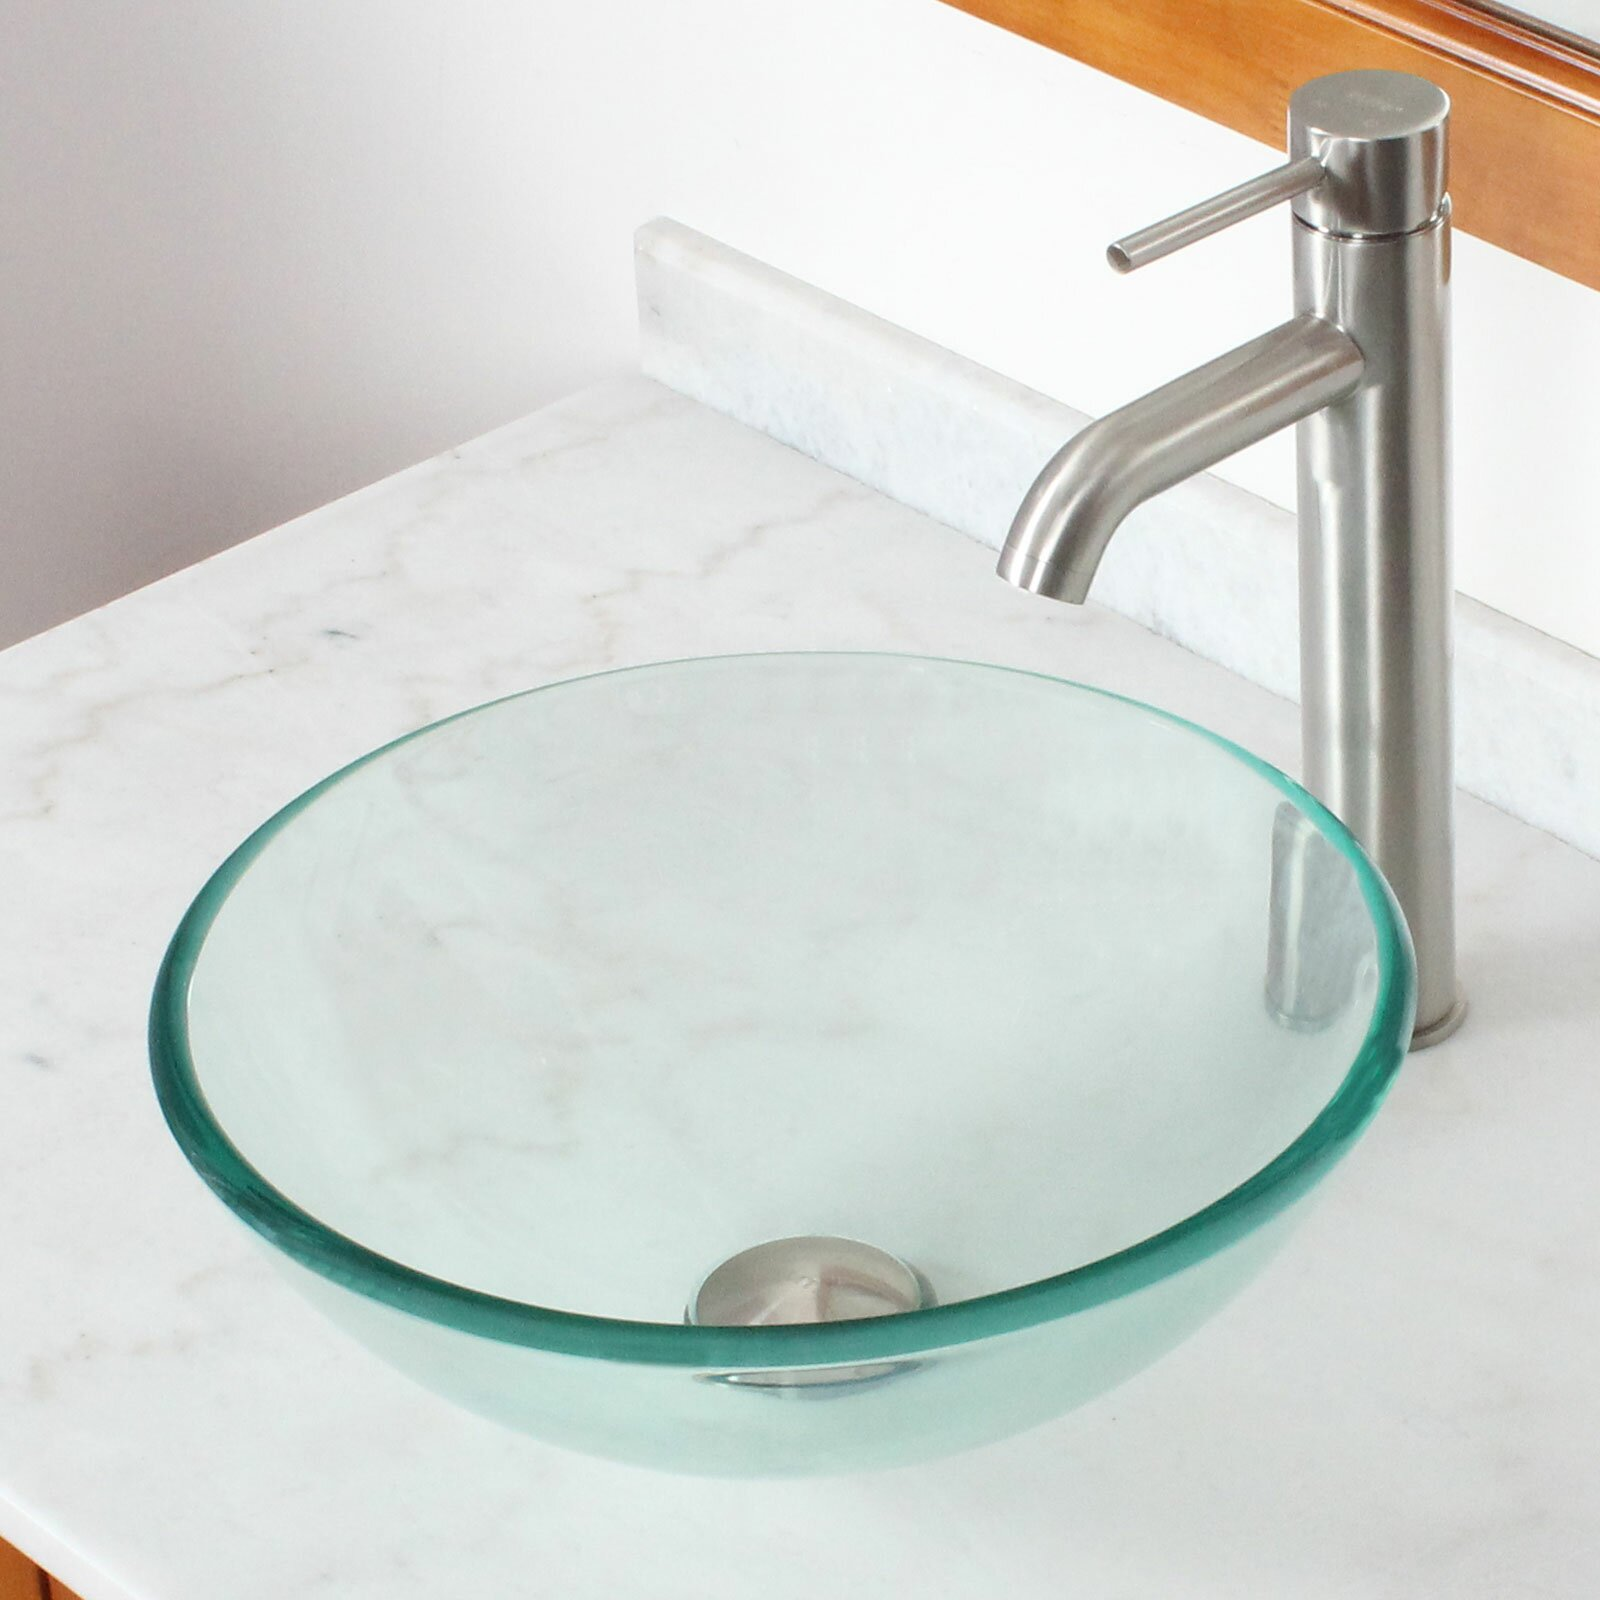 Round Bathroom Sink Bowls : Tempered Glass Round Bowl Vessel Bathroom Sink Wayfair